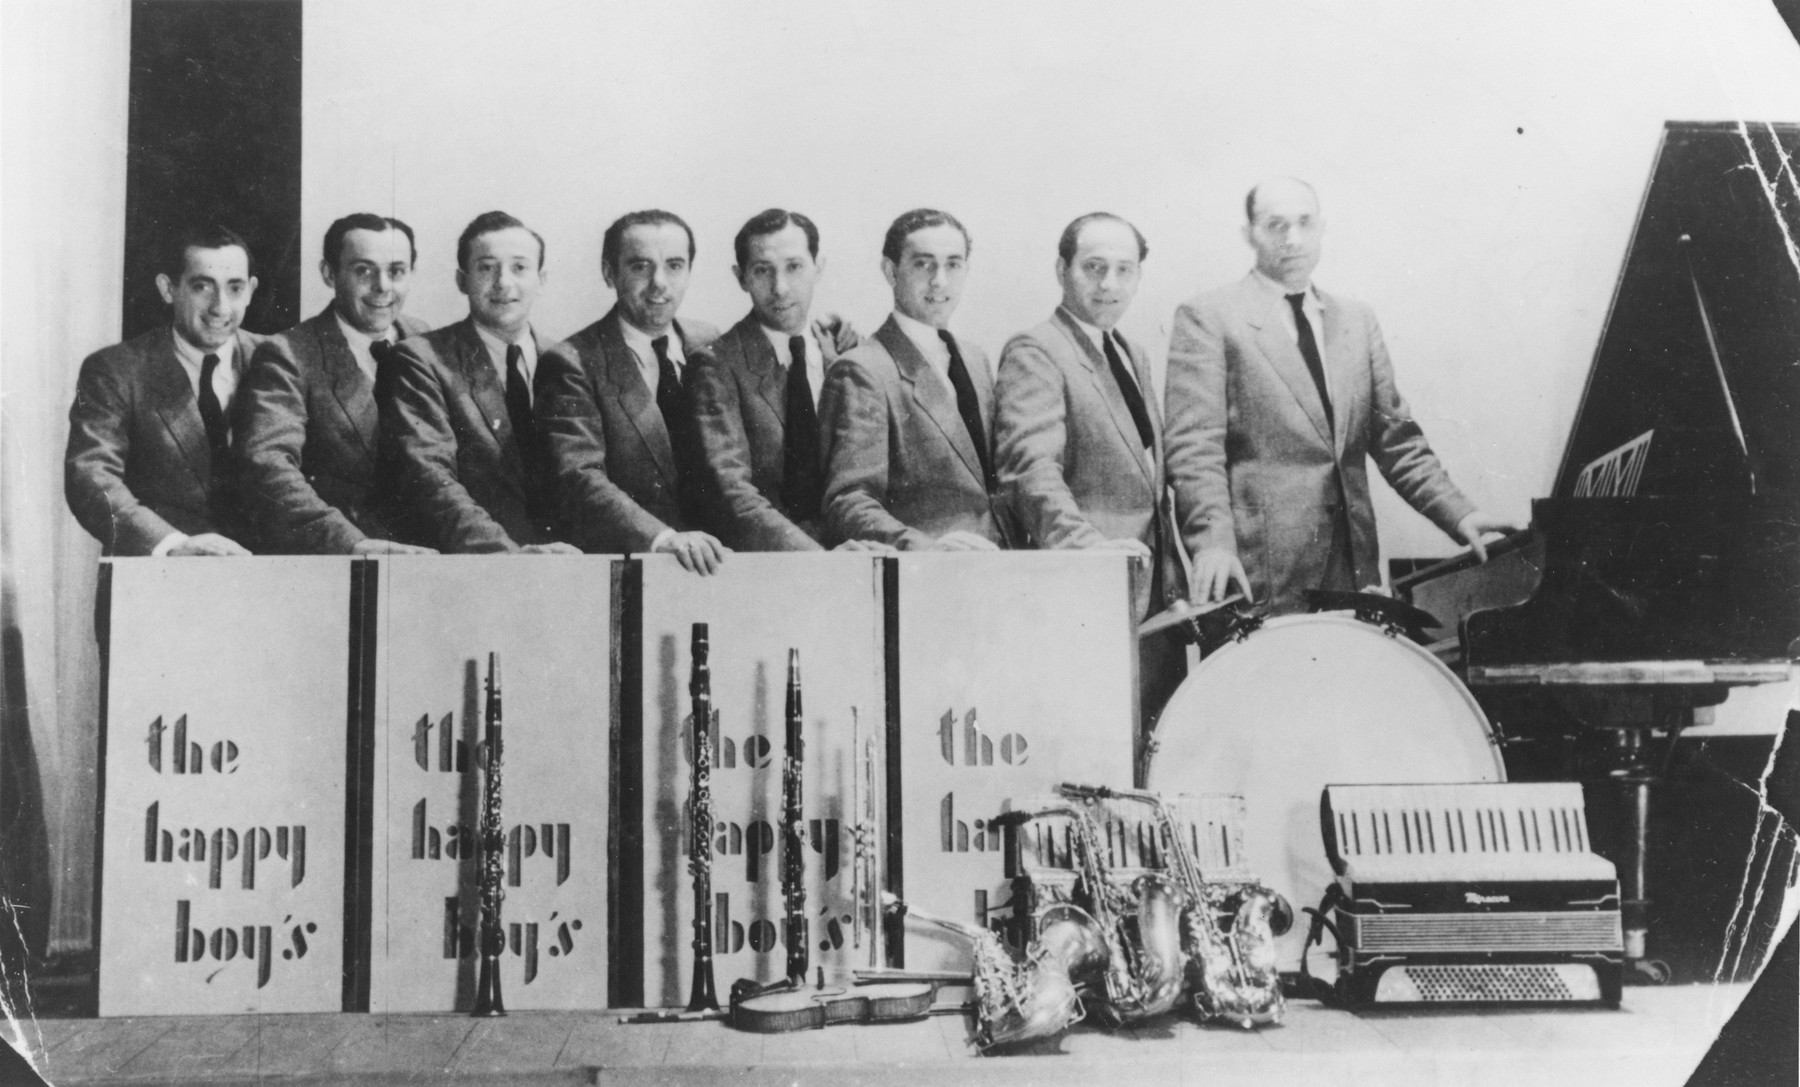 """Group portrait of the members of """"The Happy Boys"""" swing and jazz band which performed at DP camps throughout Germany from 1945-49.  Many had previously been musicians in the Lodz ghetto.  Pictured from left to right are: Sam Spaismacher, Henry Eisenman, Abraham Mutzman, Chaim (Henry) Baigelman, Elek Silberstein, Itchak Lewin, Abraham Lewin, and Josel Lewin."""